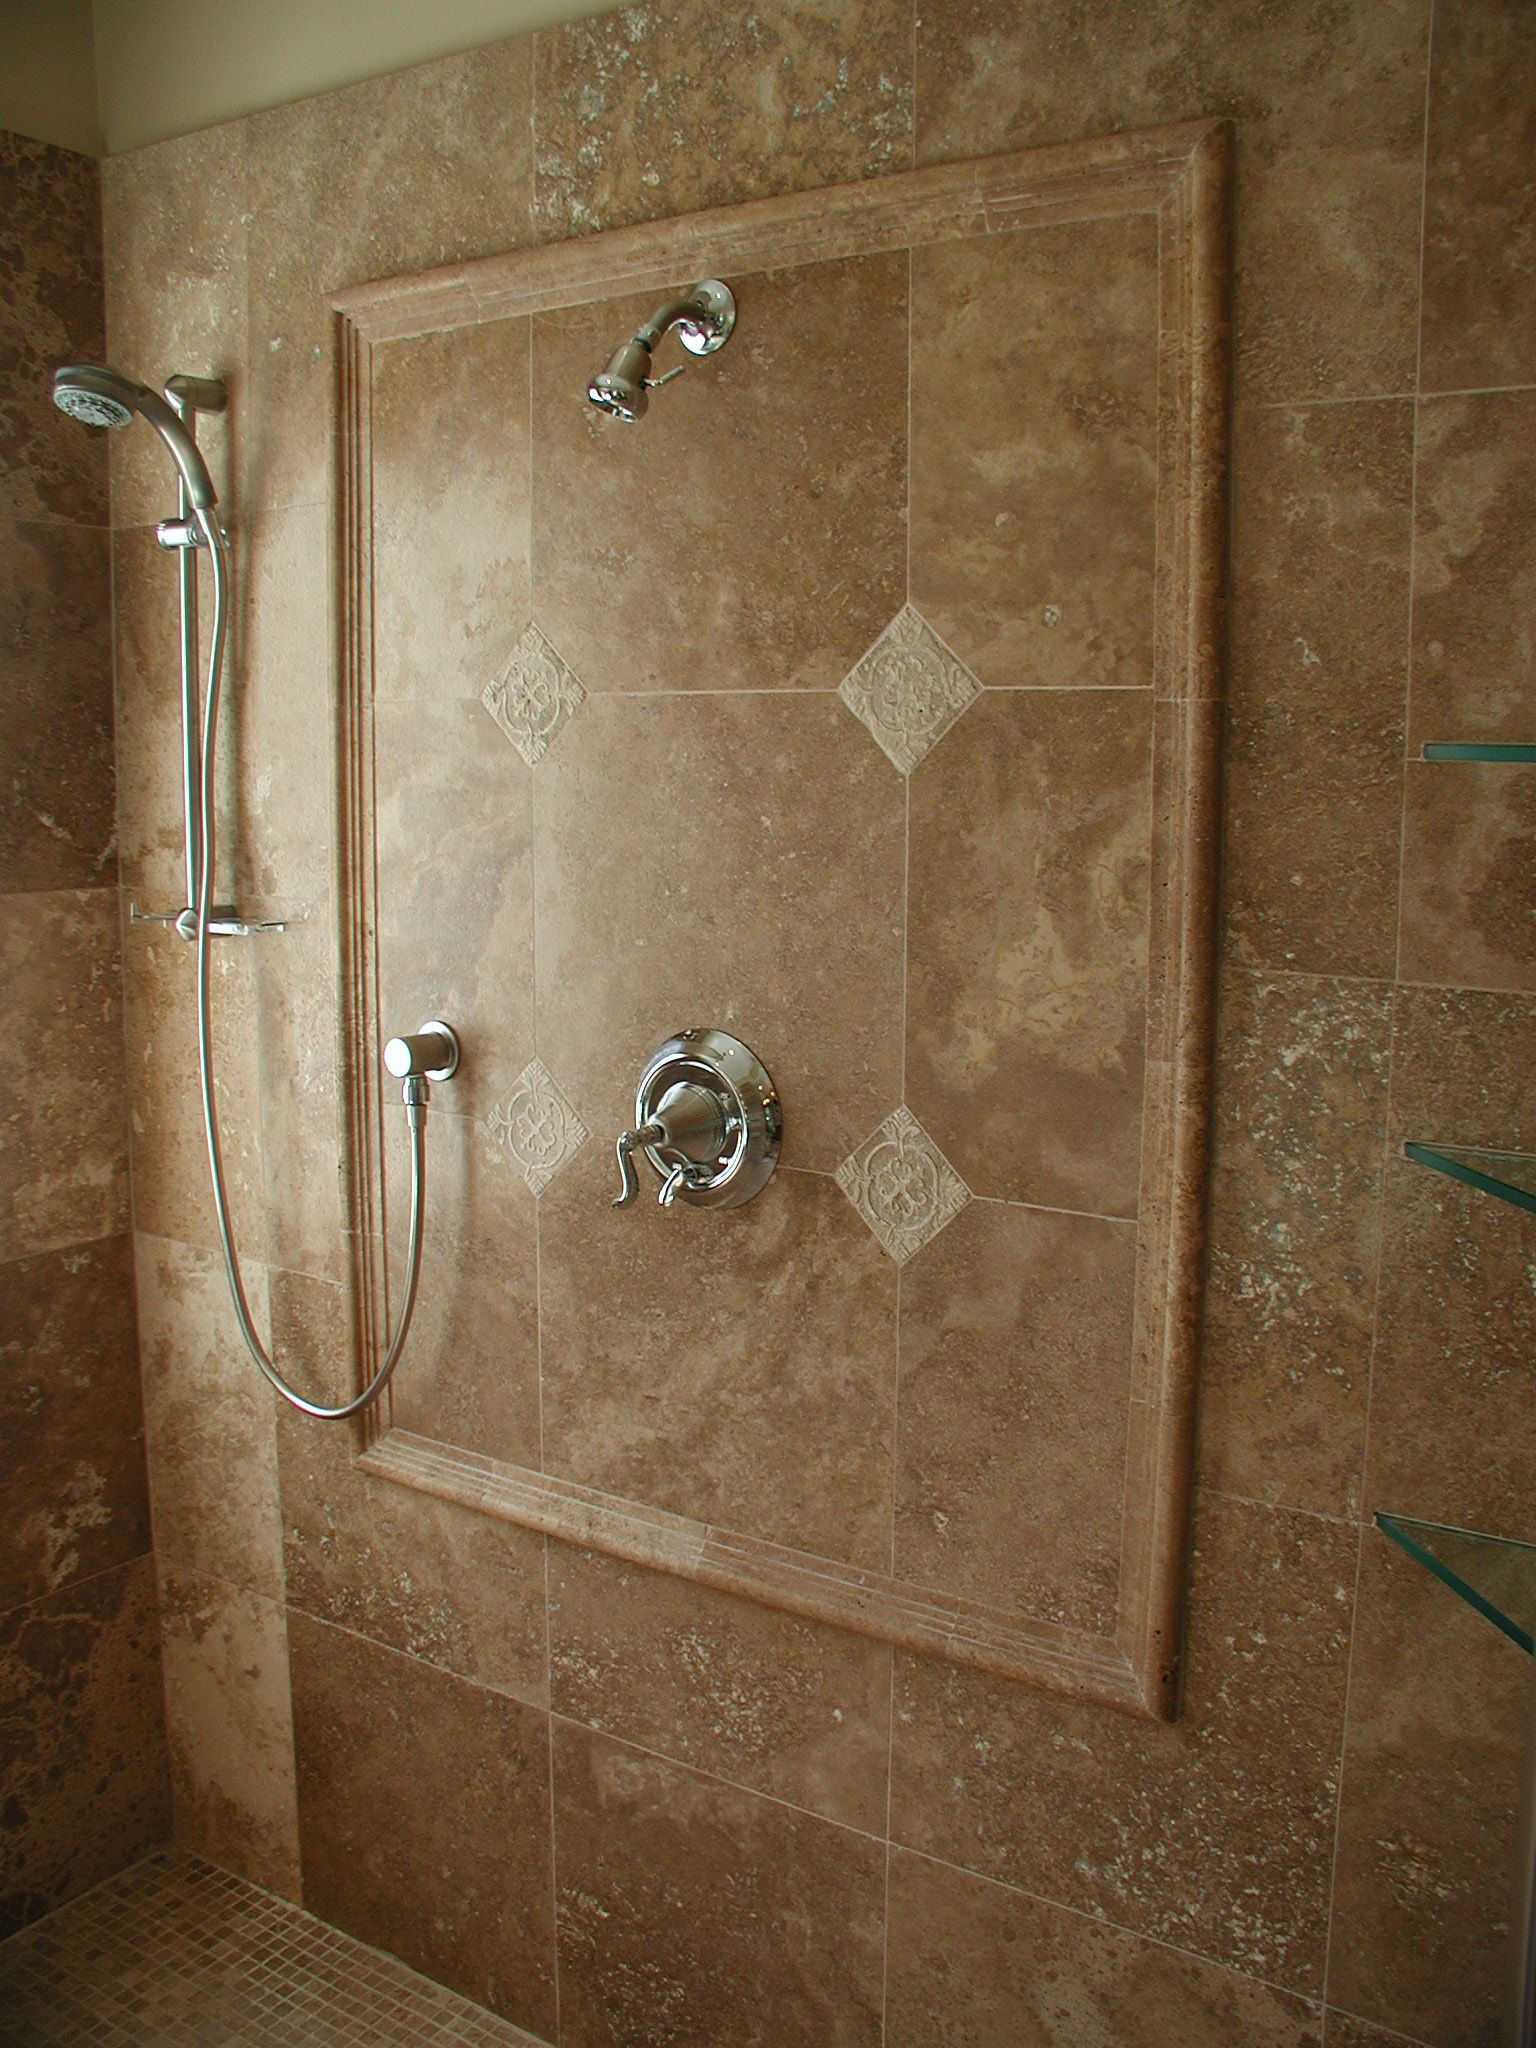 Ordinary Travertine Shower Ideas Part - 11: Bathroom Design, Inspiring Limestone Shower Walls Noce Travertine  Remodeling Bathroom Ideas Houston Mixed With Glass Shelves In Corner Views:  Magnificent ...